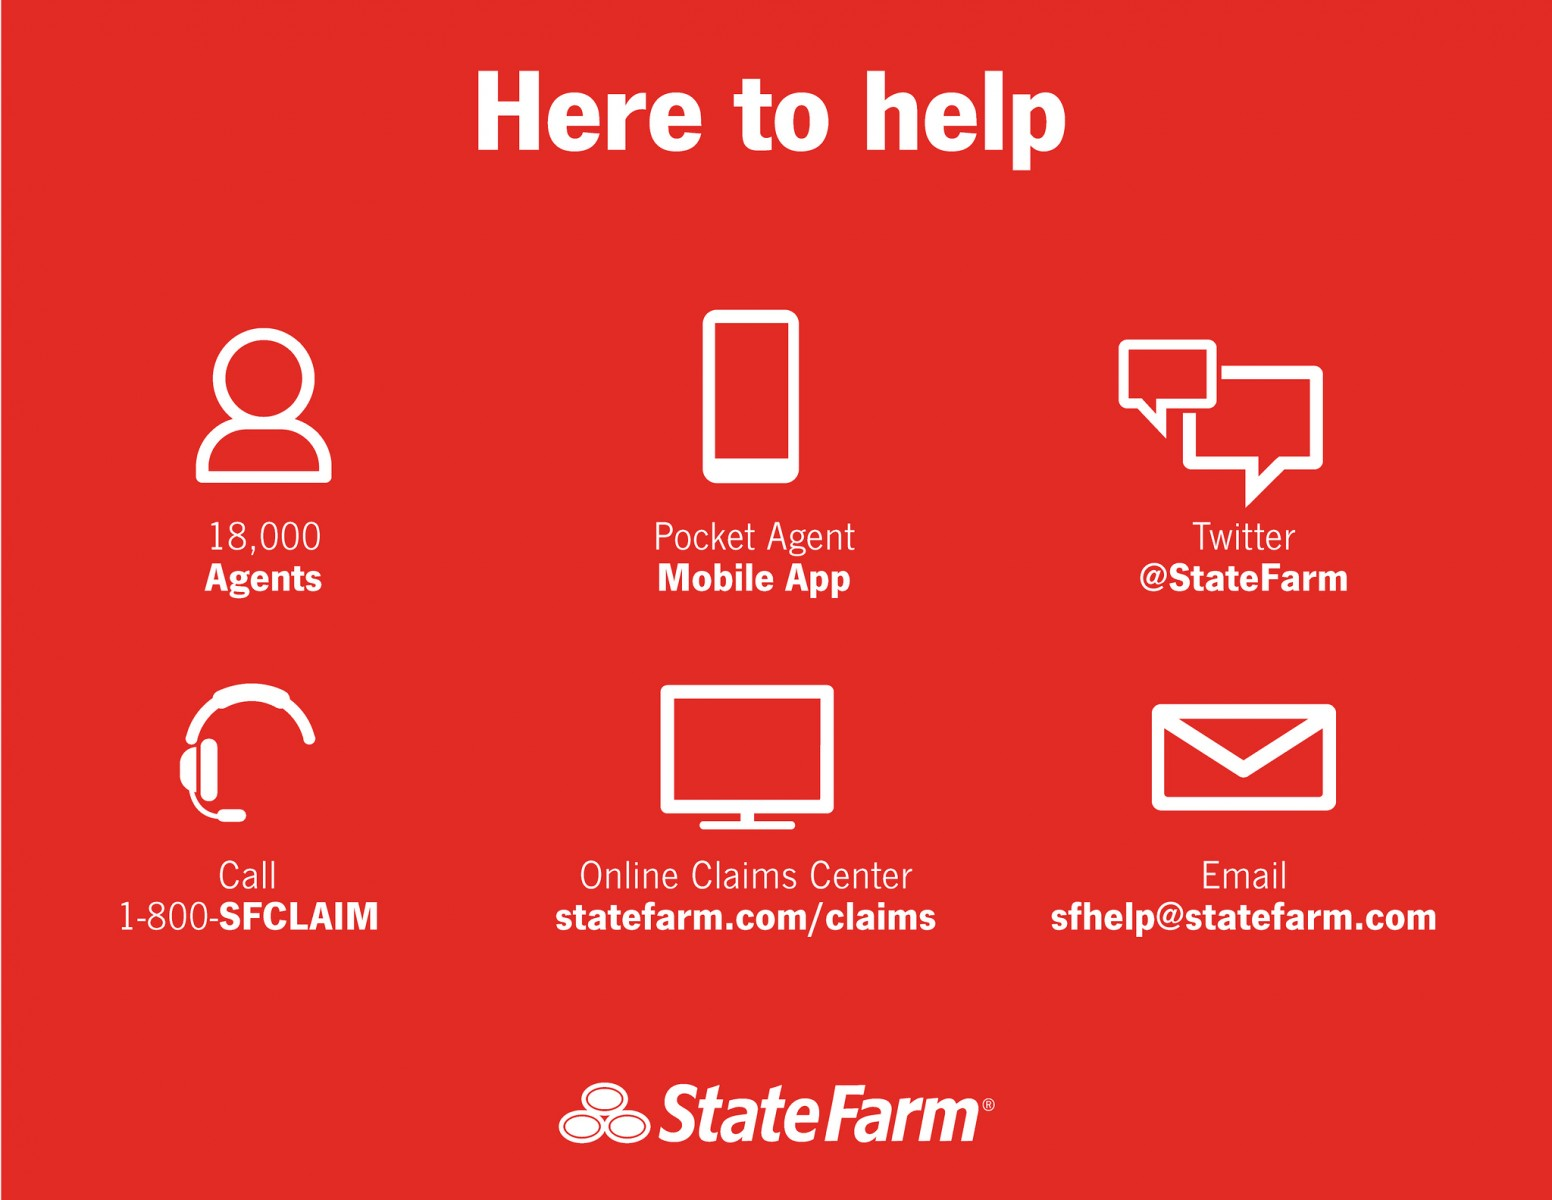 State Farm contact